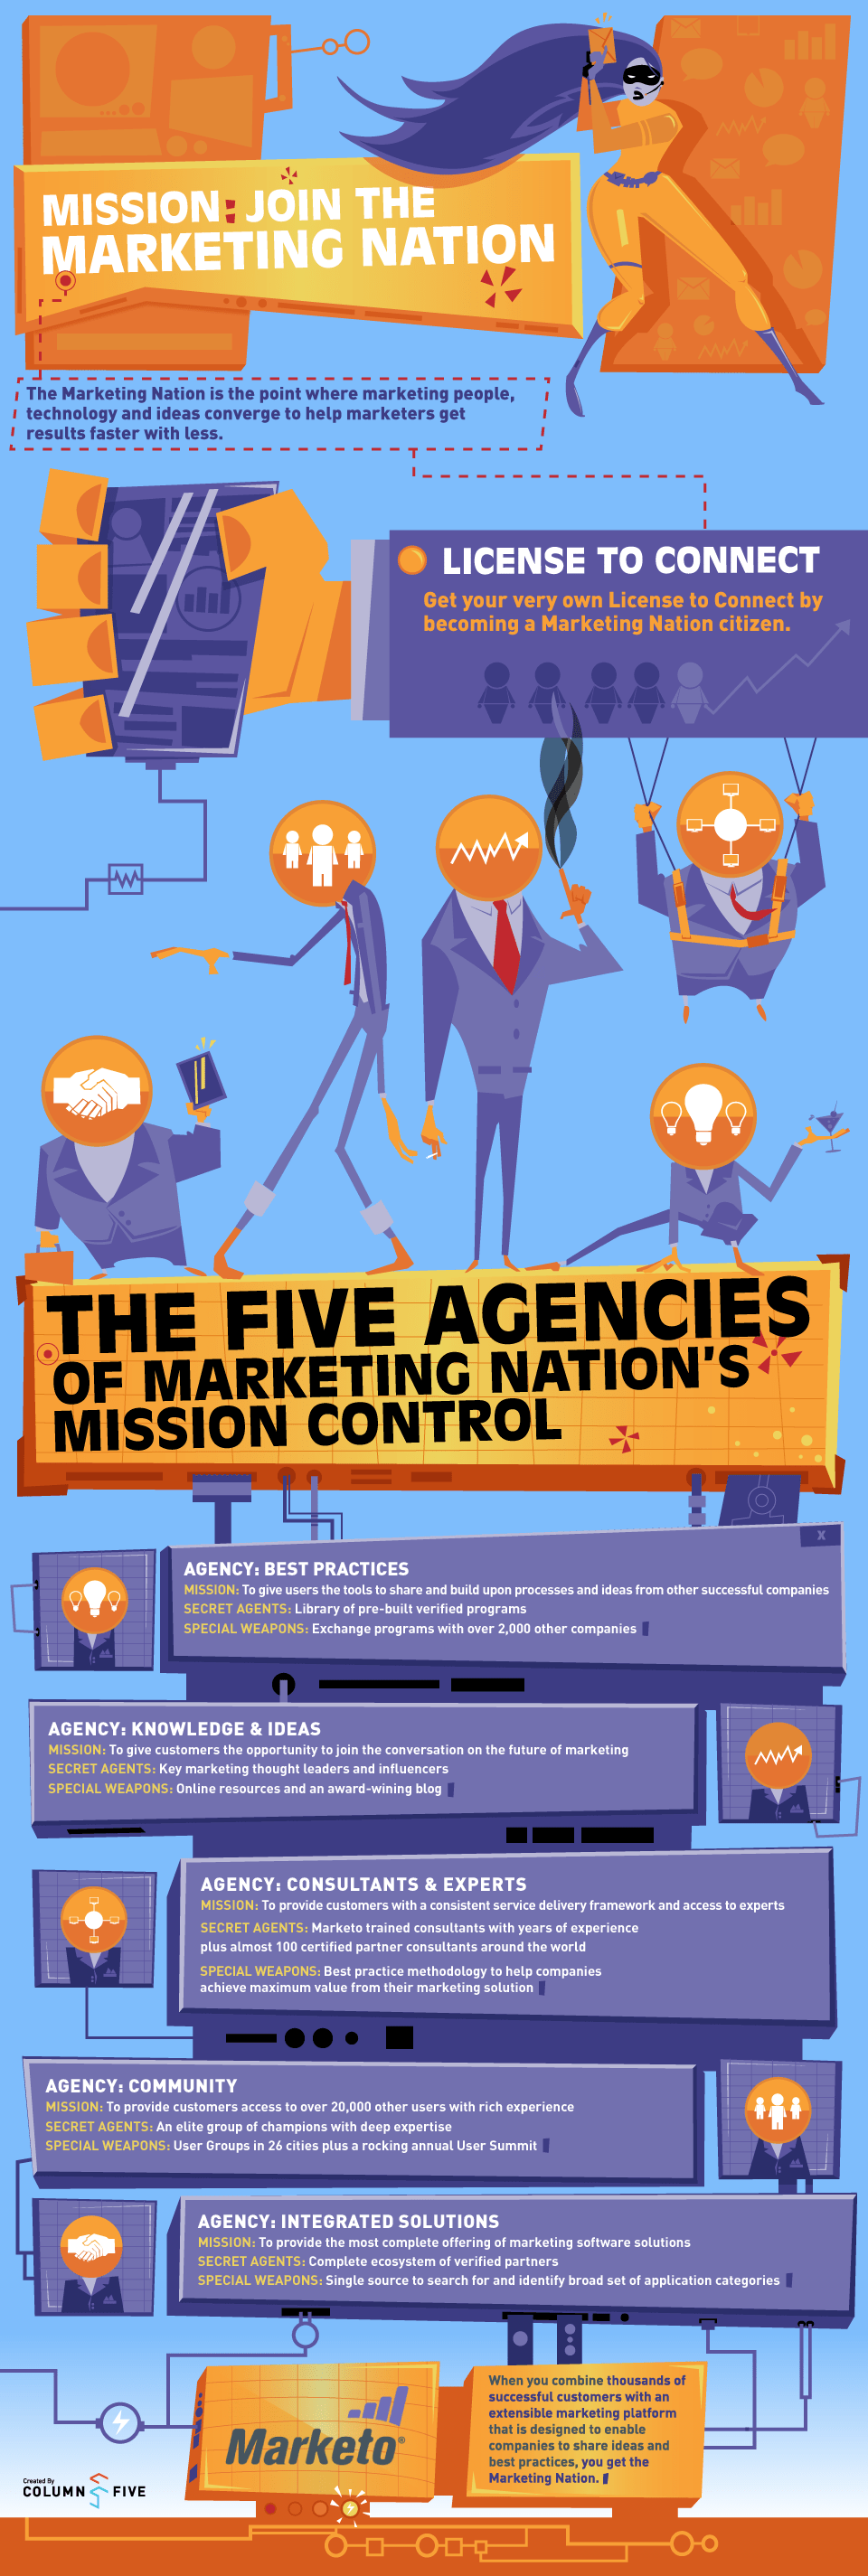 mission-join-the-marketing-nation_508b05744a6fb